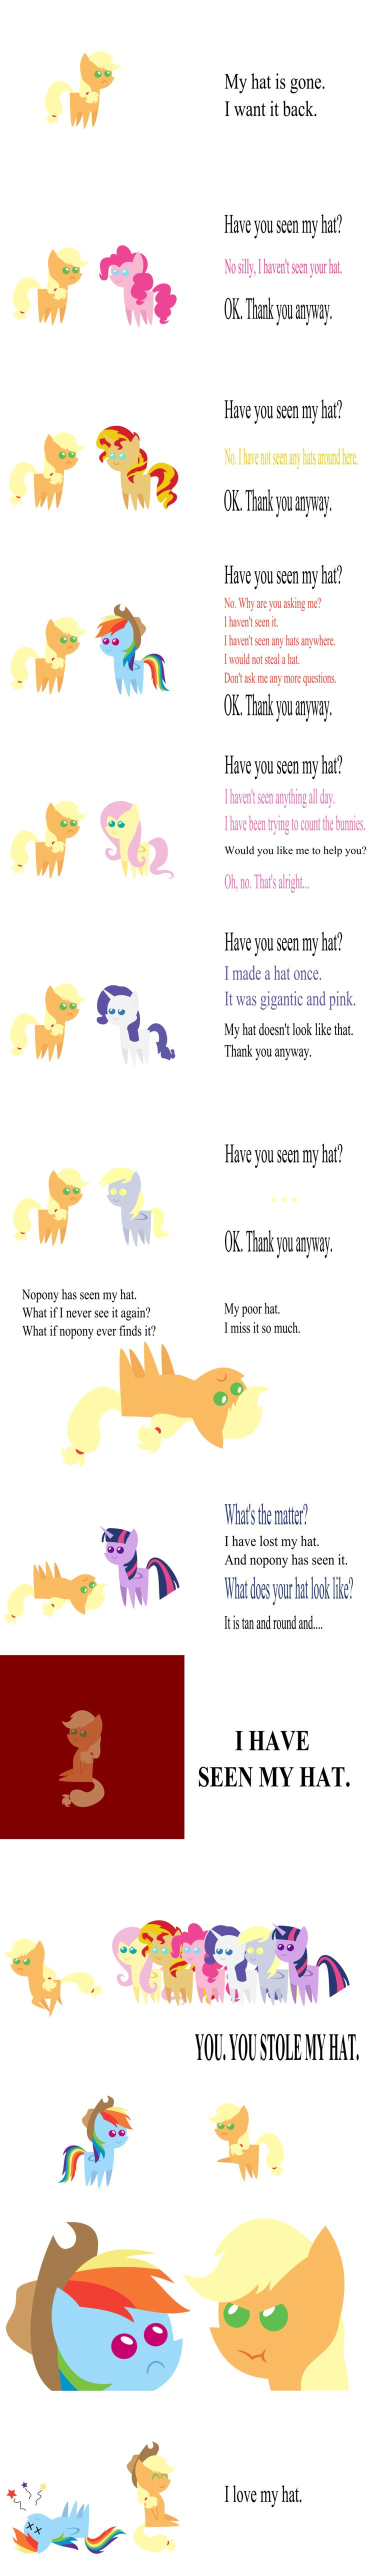 cute little Applejack: I want my hat back. by V0JELLY.deviantart.com on @deviantART poor RD...AJ why do you have to be so mean?!